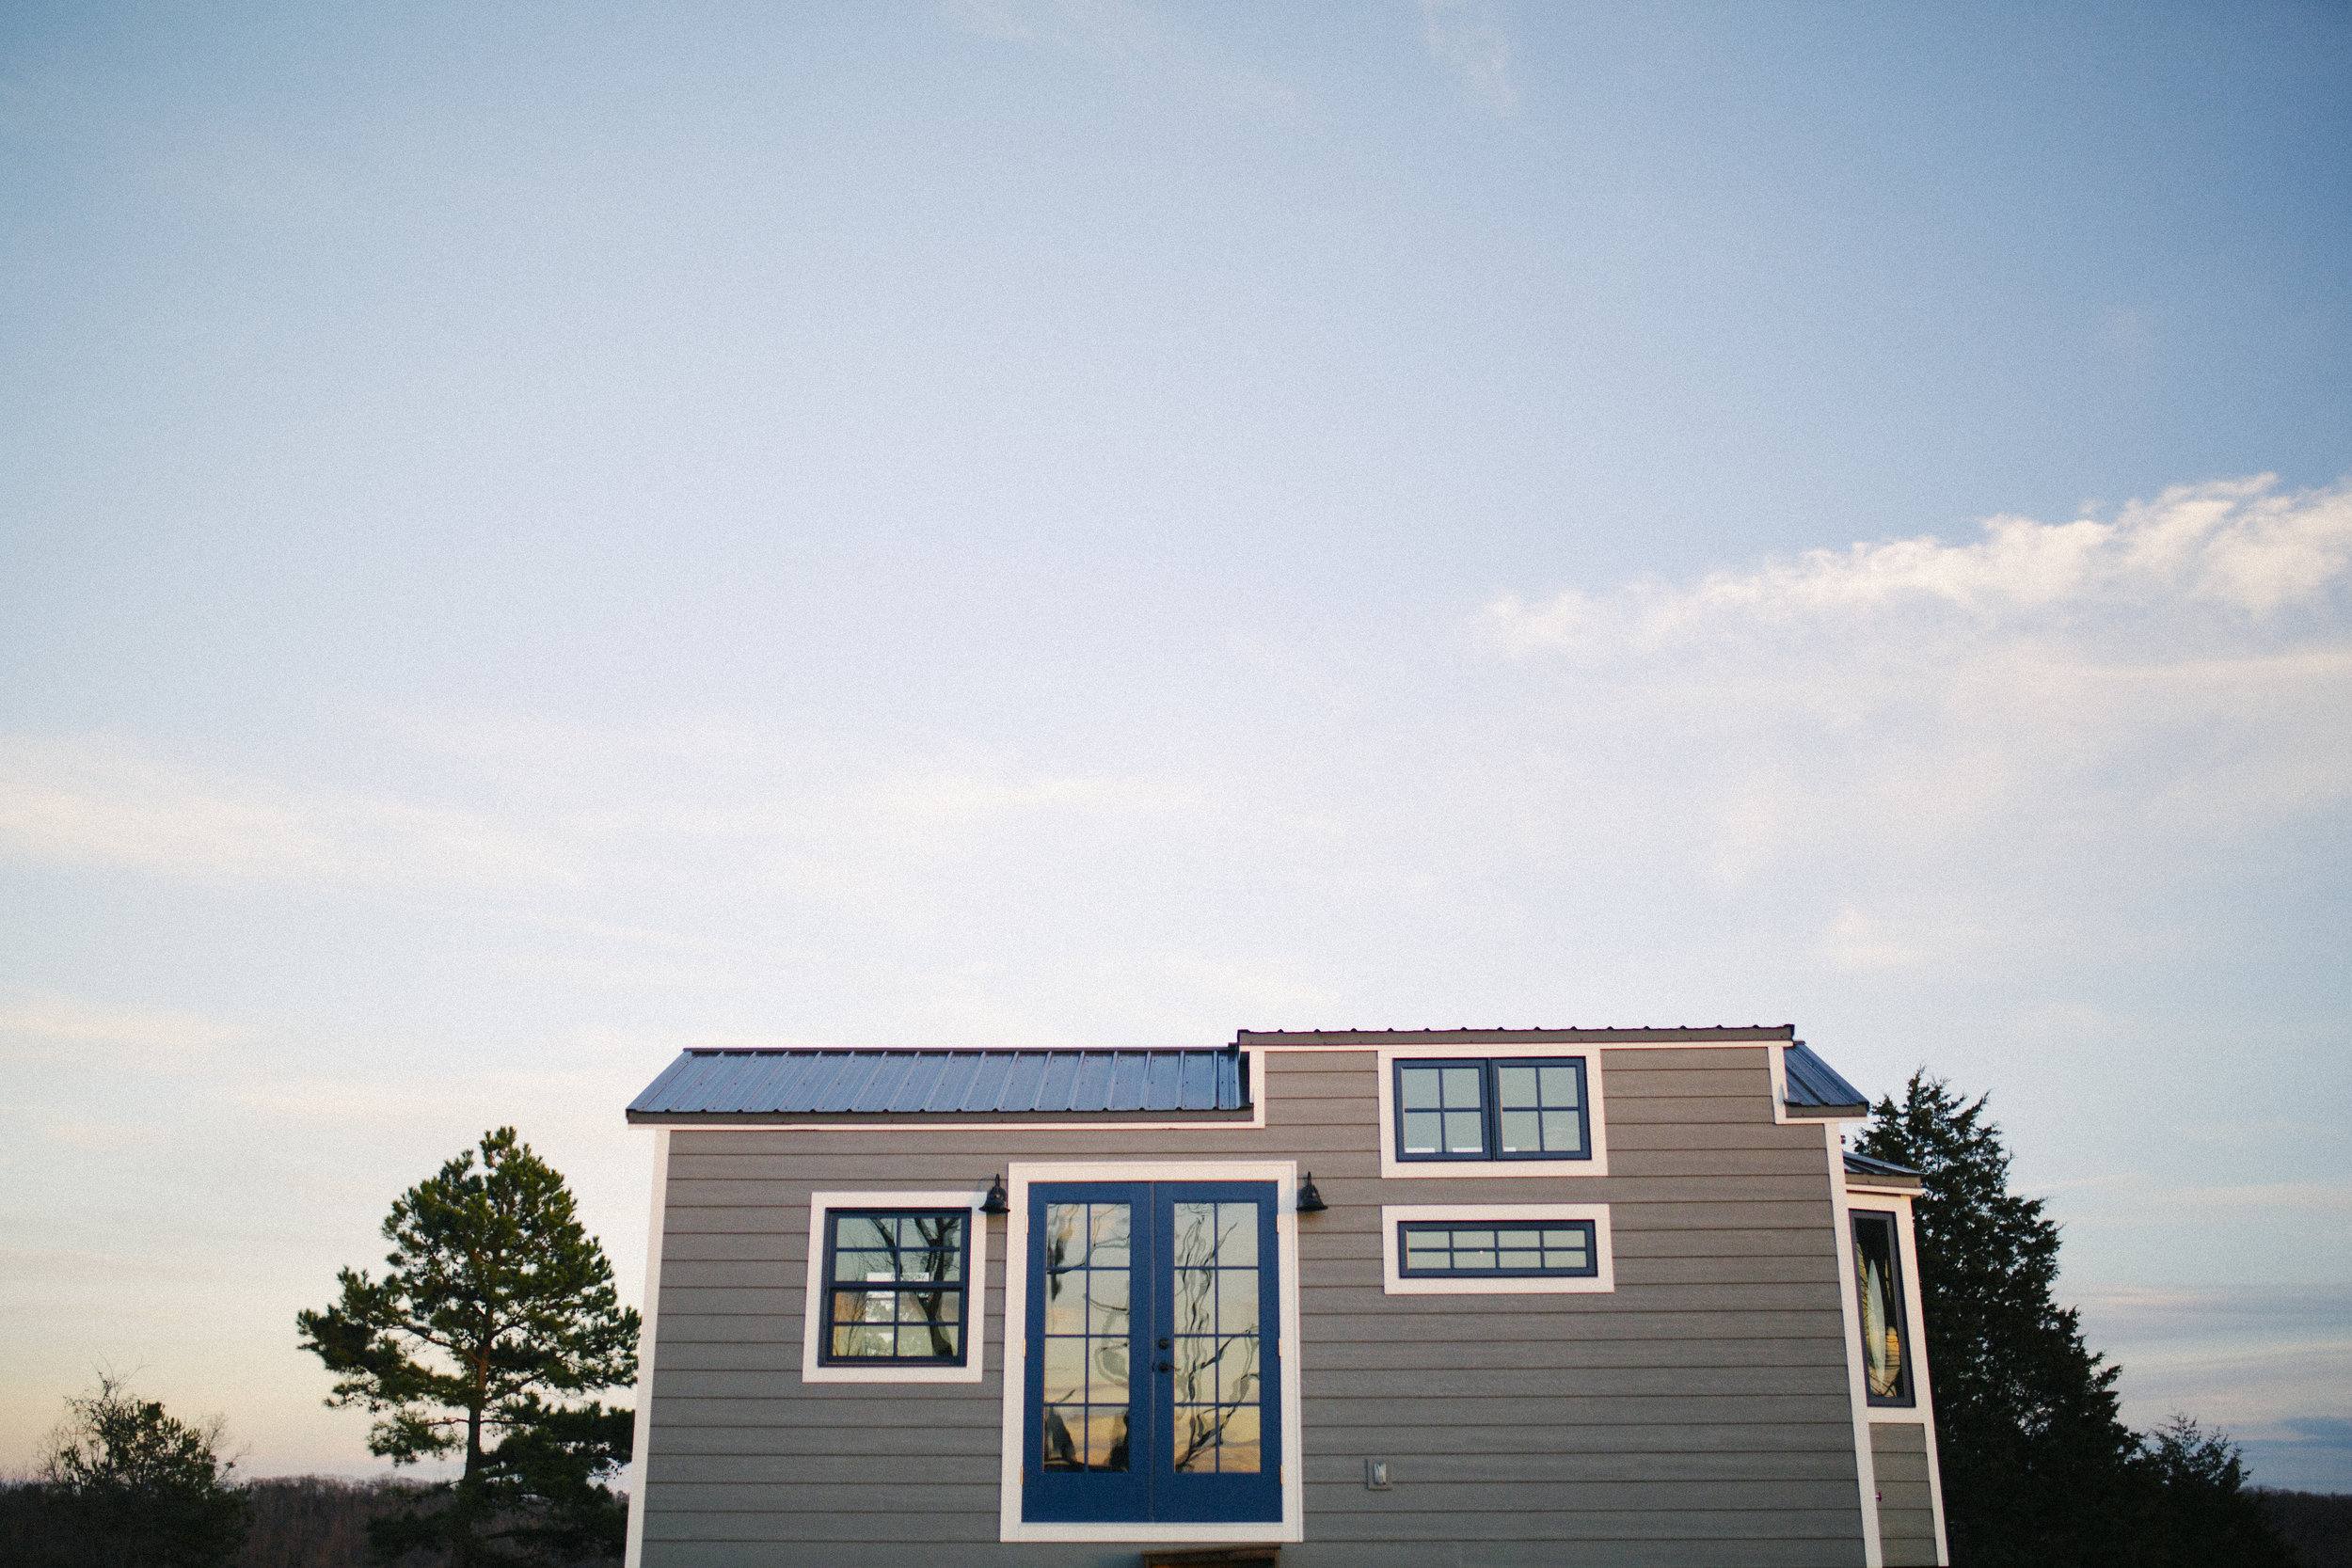 The Monocle by Wind River Tiny Homes - LP smartside, metal roof, aluminum clad windows